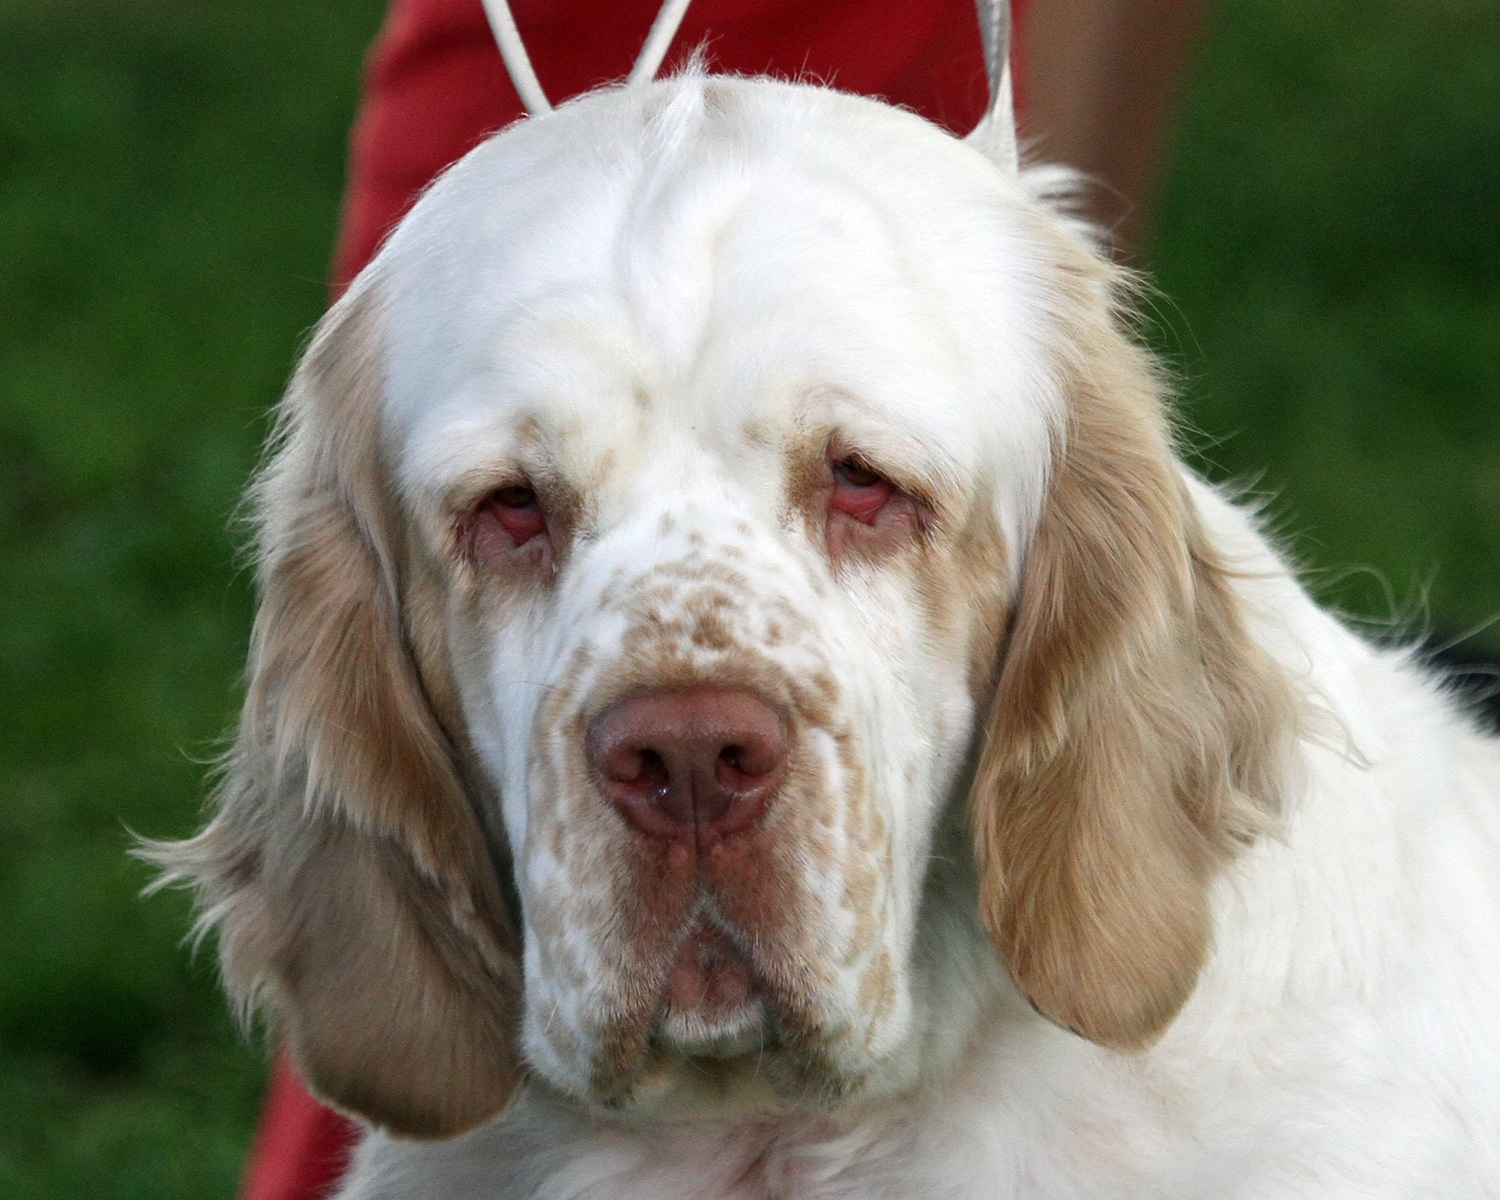 Clumber Spaniel Back To The Future For Clumber Spaniels Canis Lupus Hominis